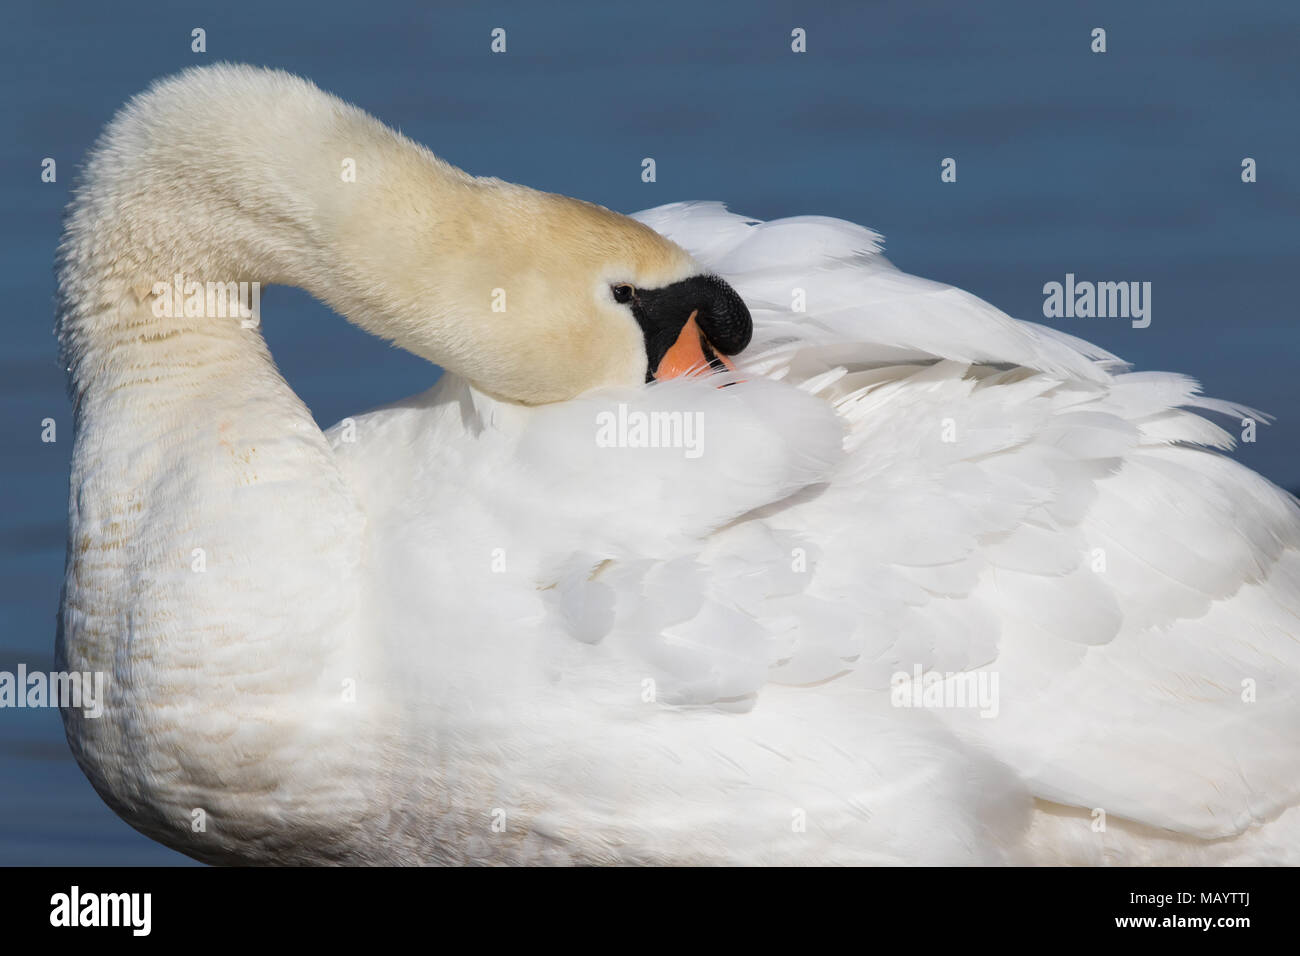 adult Mute Swan (Cygnus olor) preening its back feathers - Stock Image